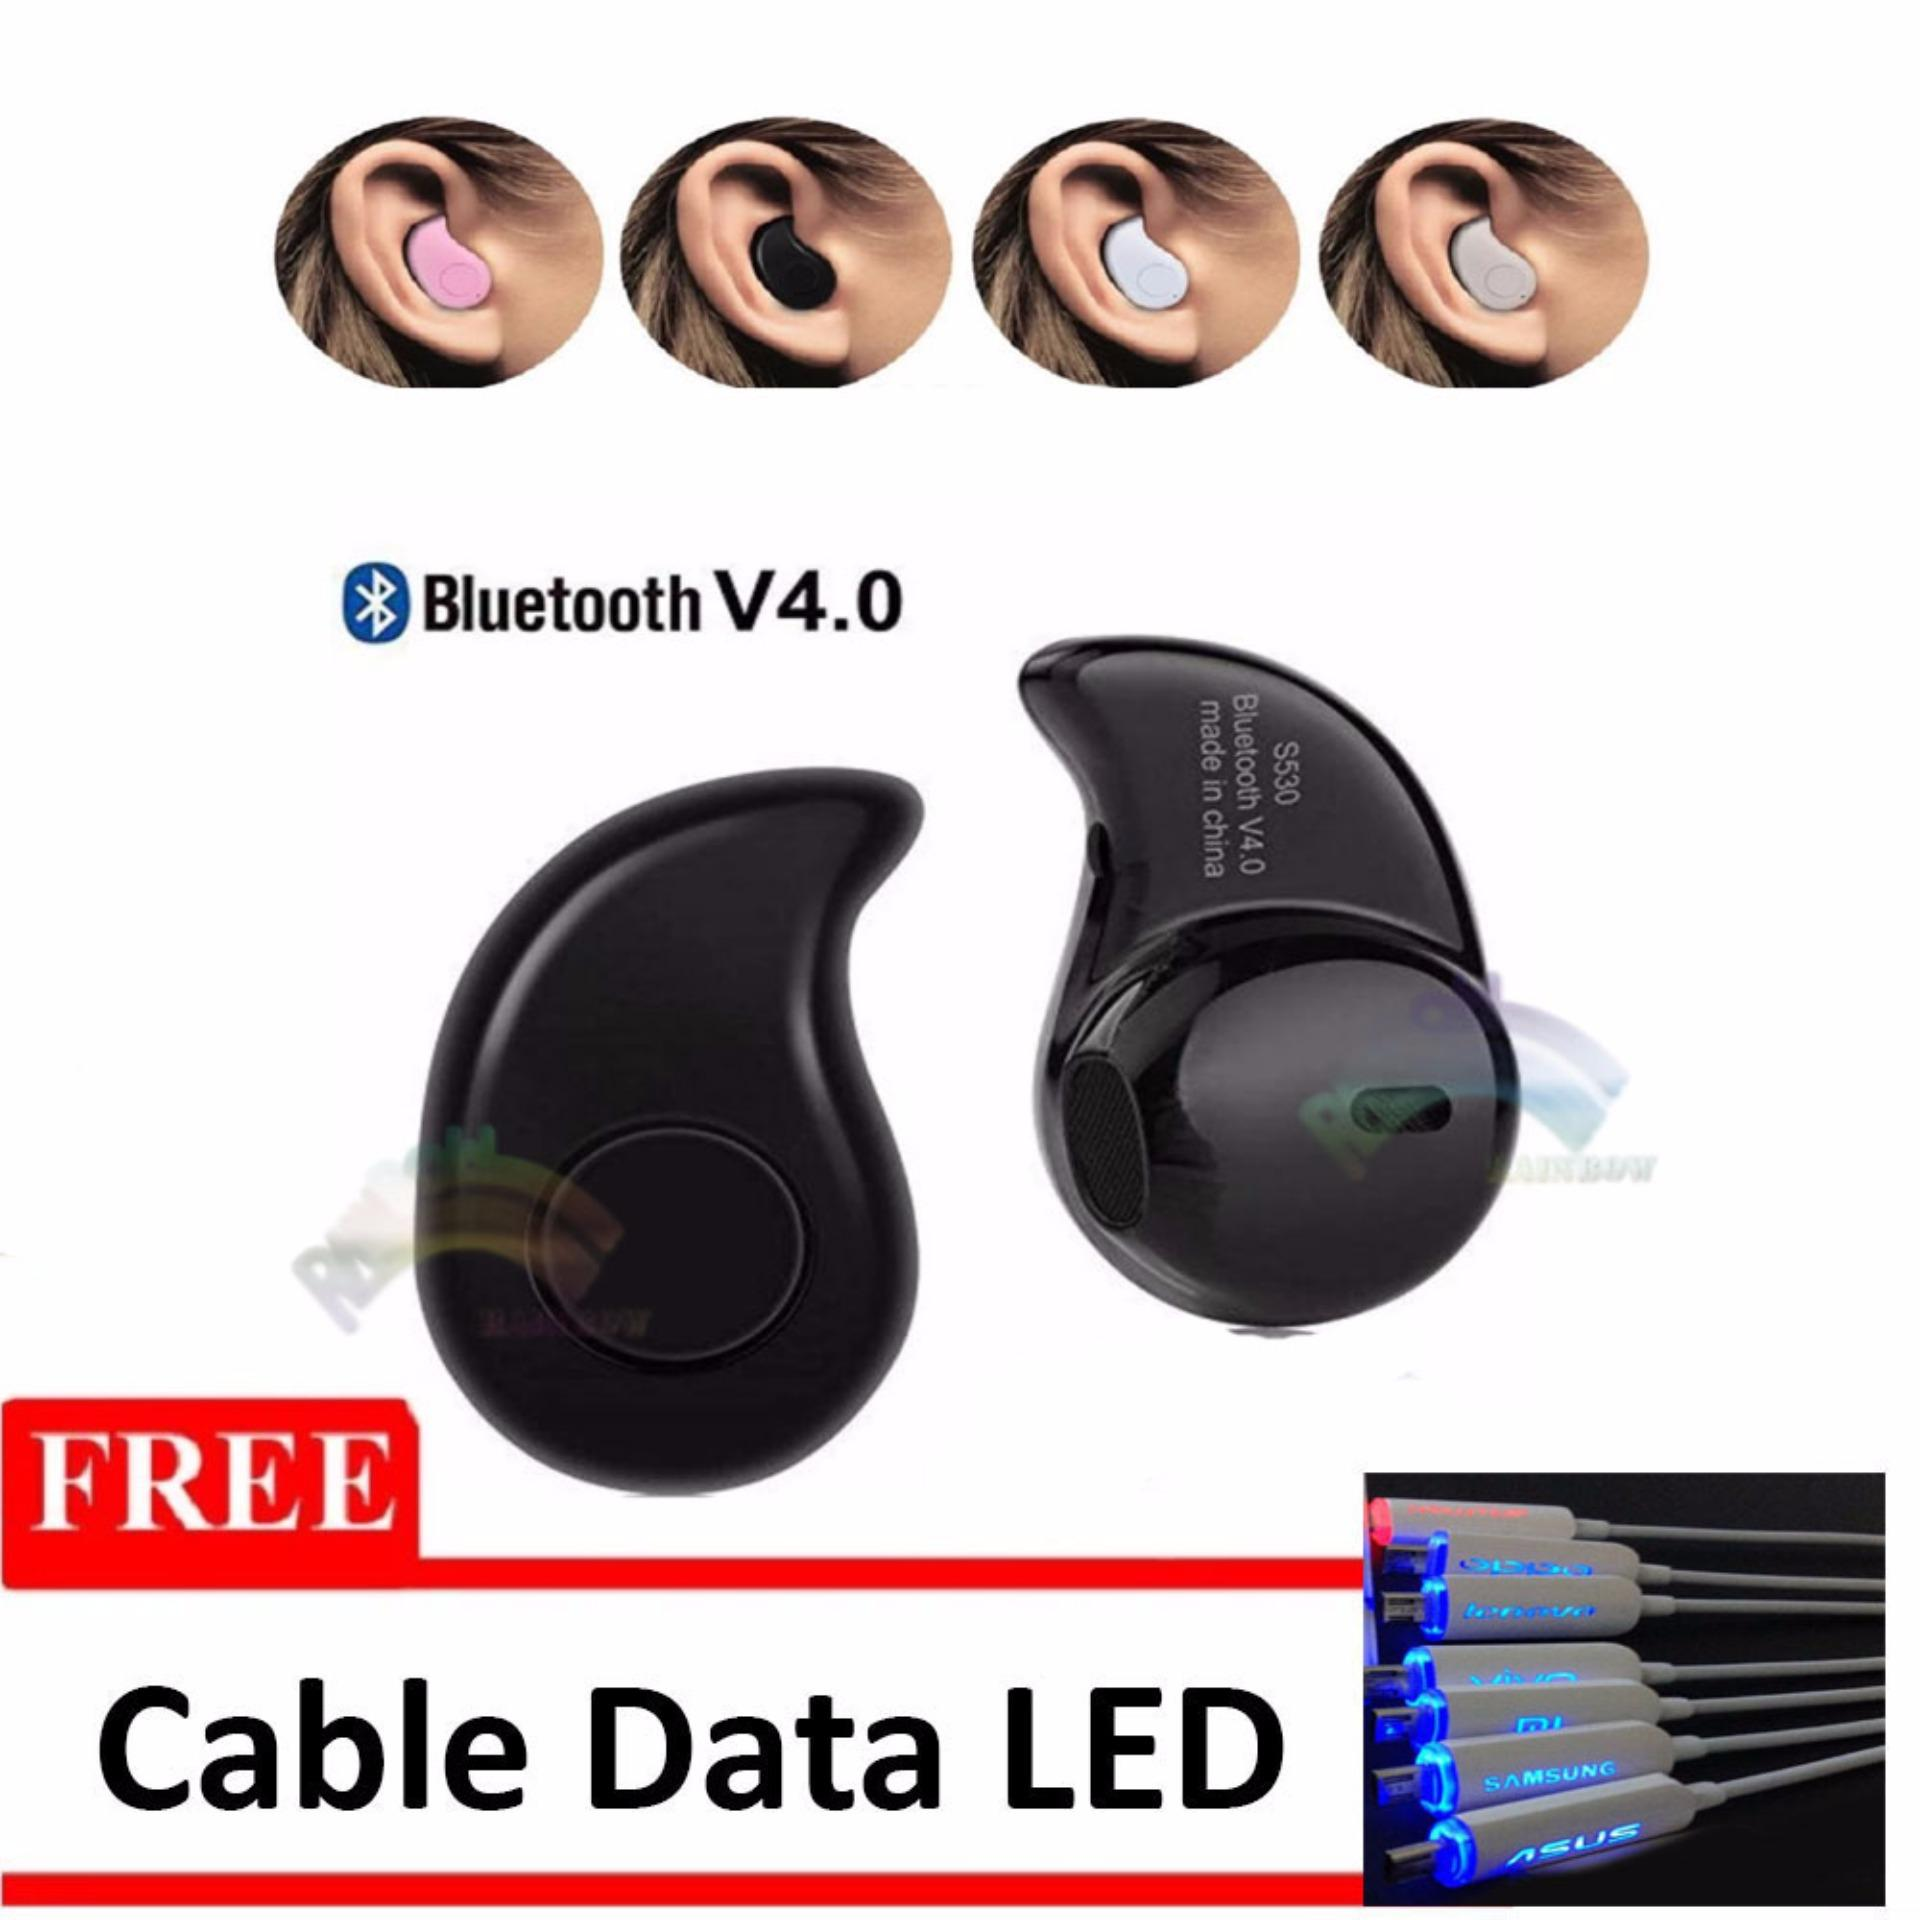 ... Rainbow Bluetooth V 4.0 Music Invisible Handsfree Bluetooth ModelS530 Kacang Mete / Micro Sport Stereo Mini ...